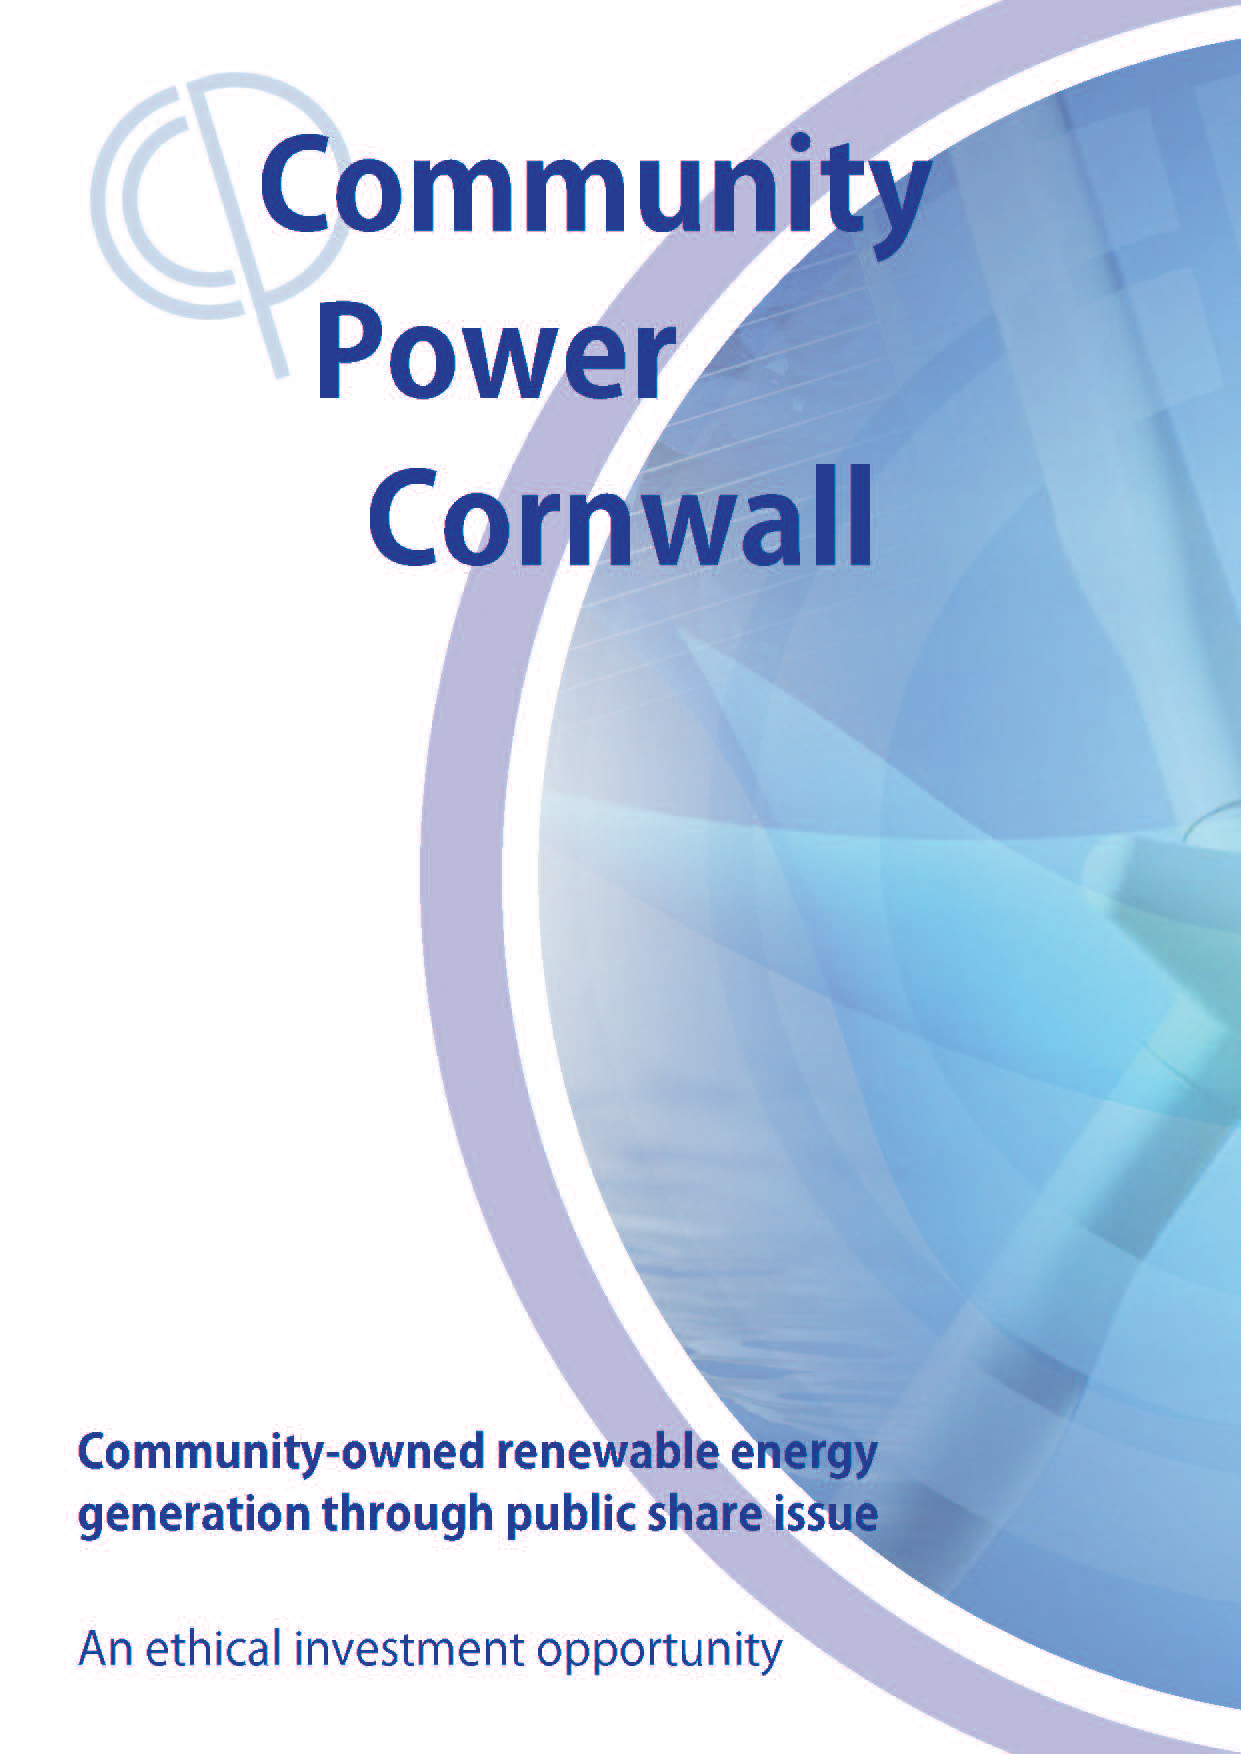 Community Power Cornwall share offer p.1